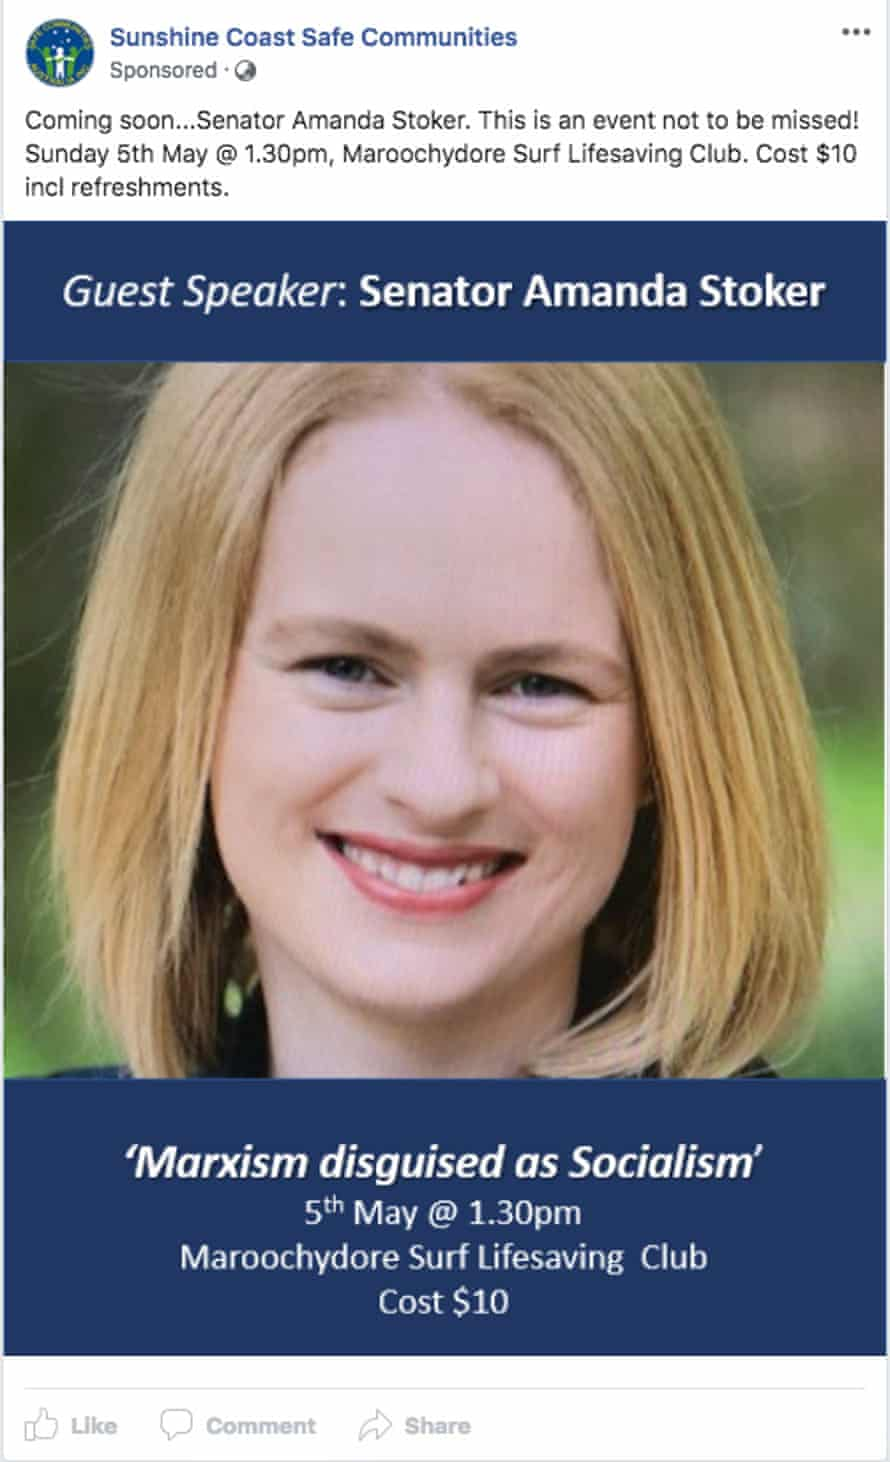 A Facebook ad used by the group to promote Amanda Stoker's speech